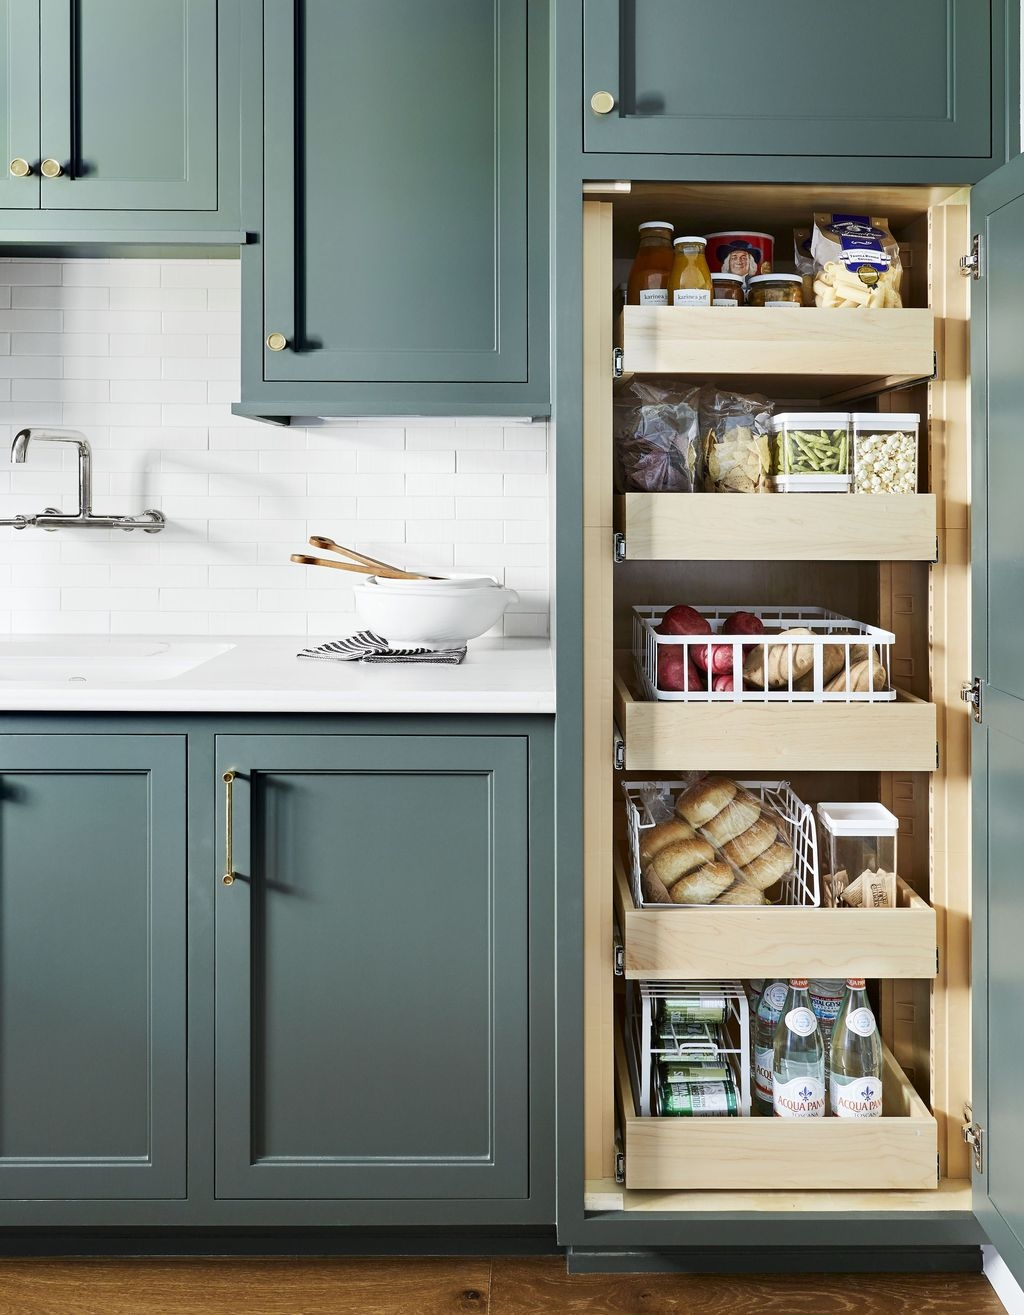 Inspiring Kitchen Storage Design Ideas 24